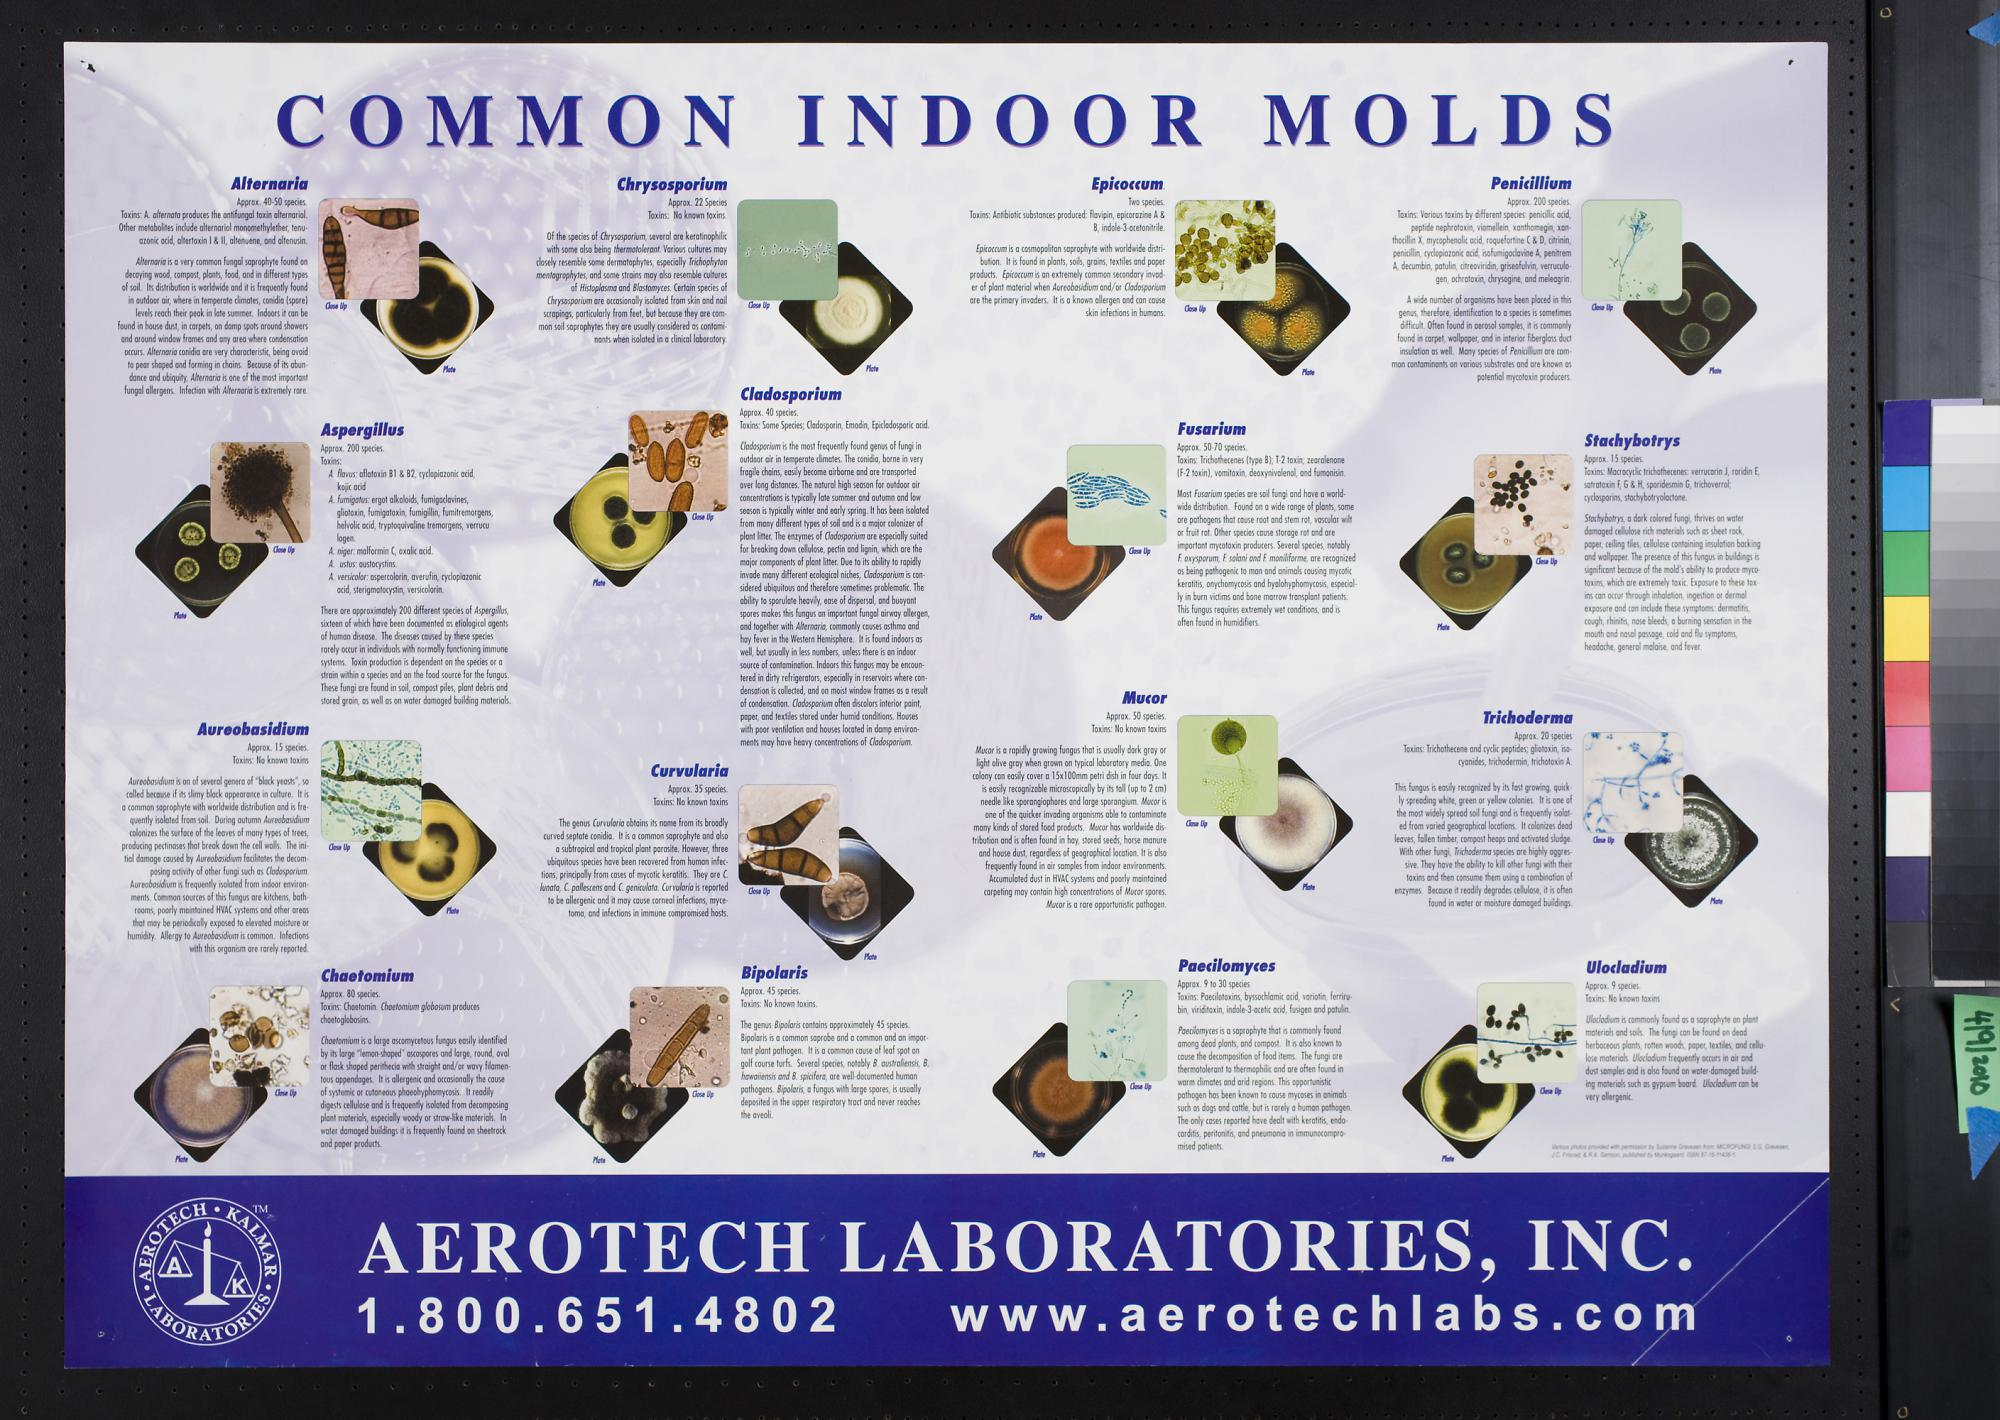 2010 54 13353 Back To Search Results Common Indoor Molds